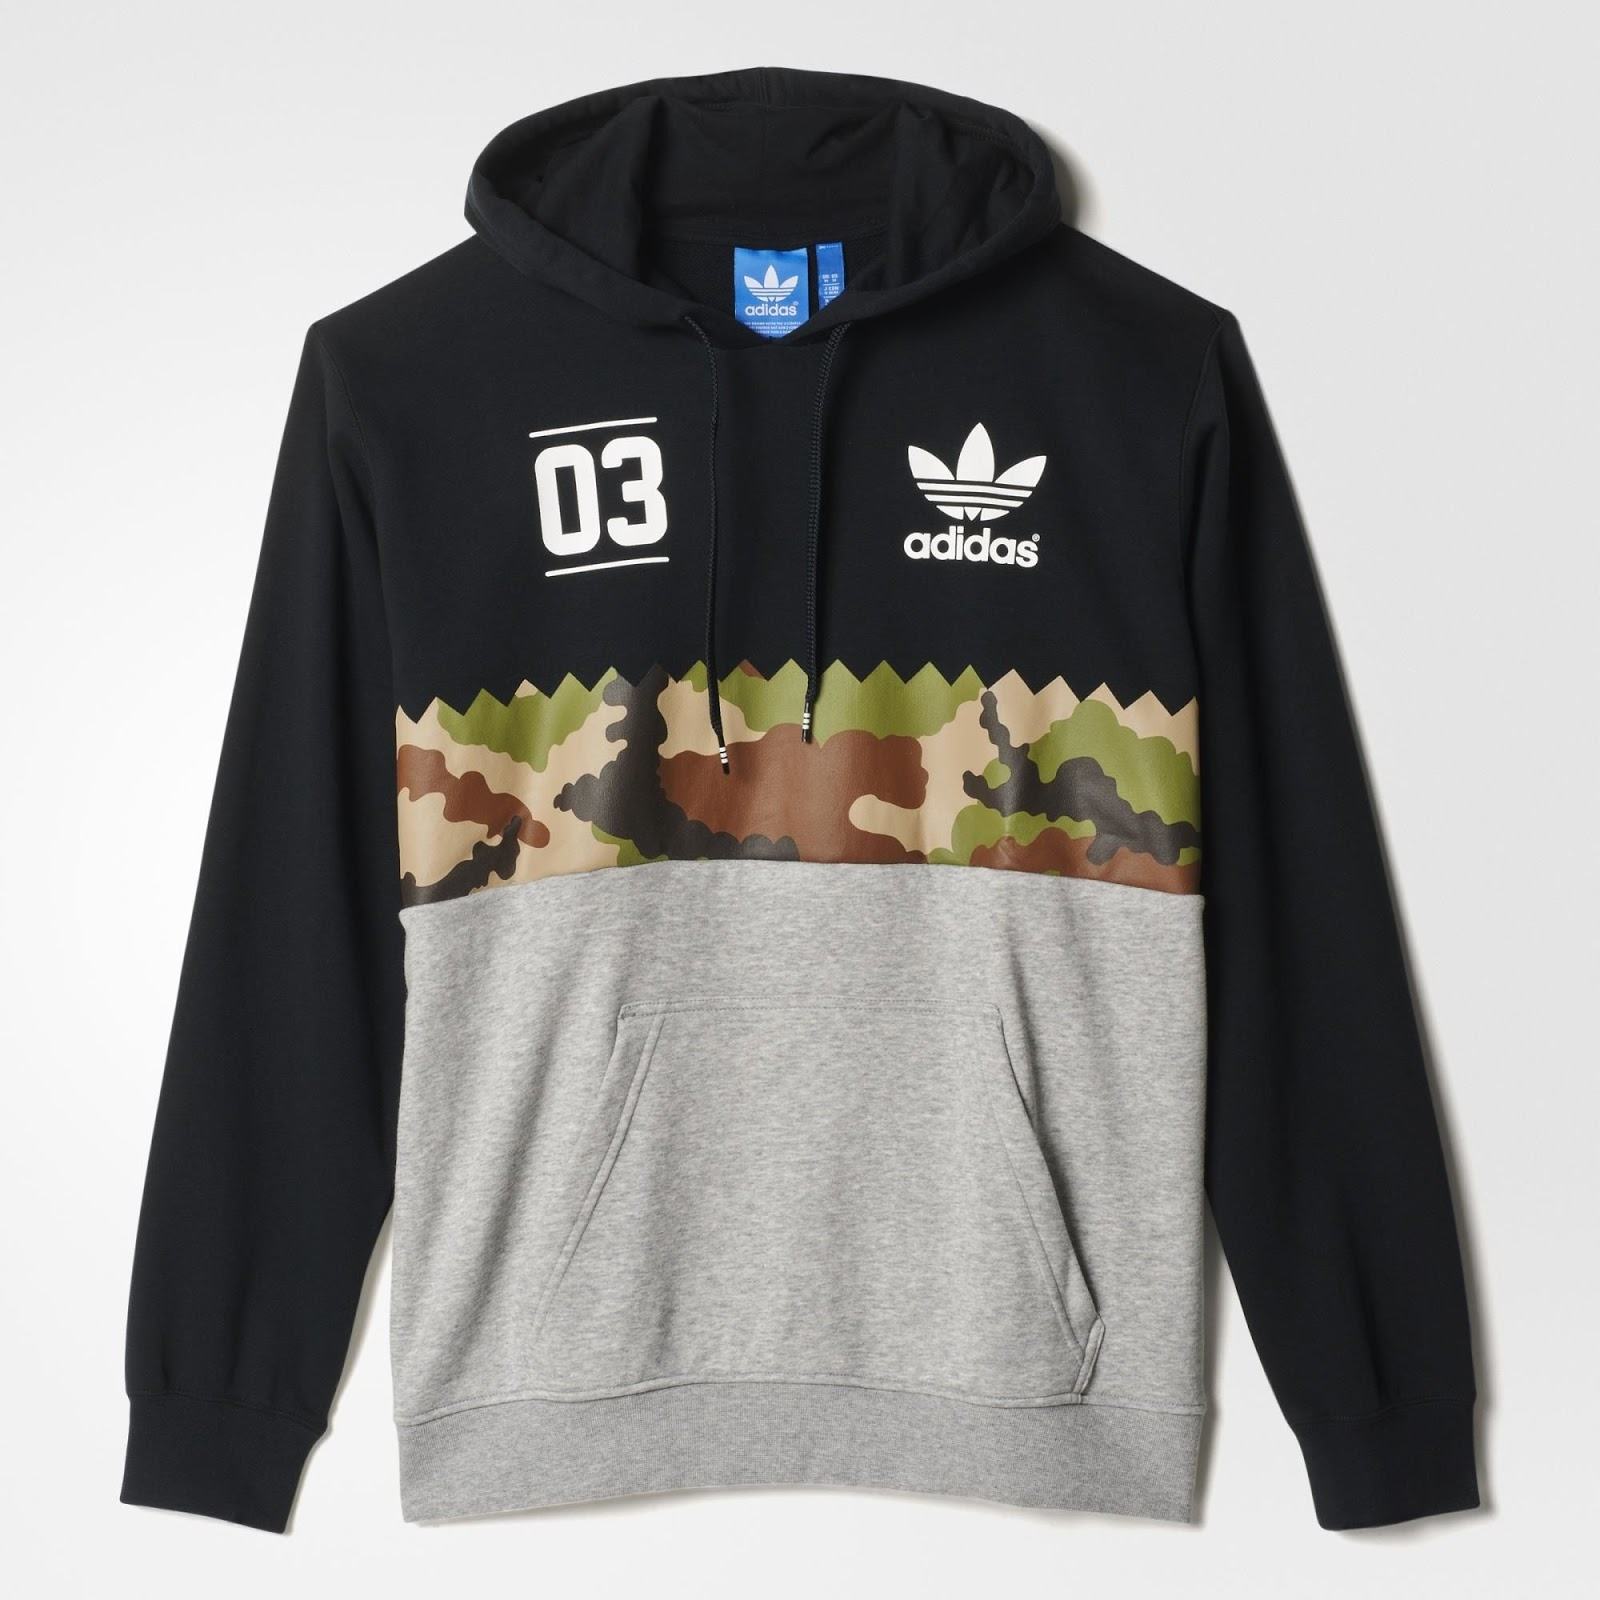 adidas originals 03 jacket